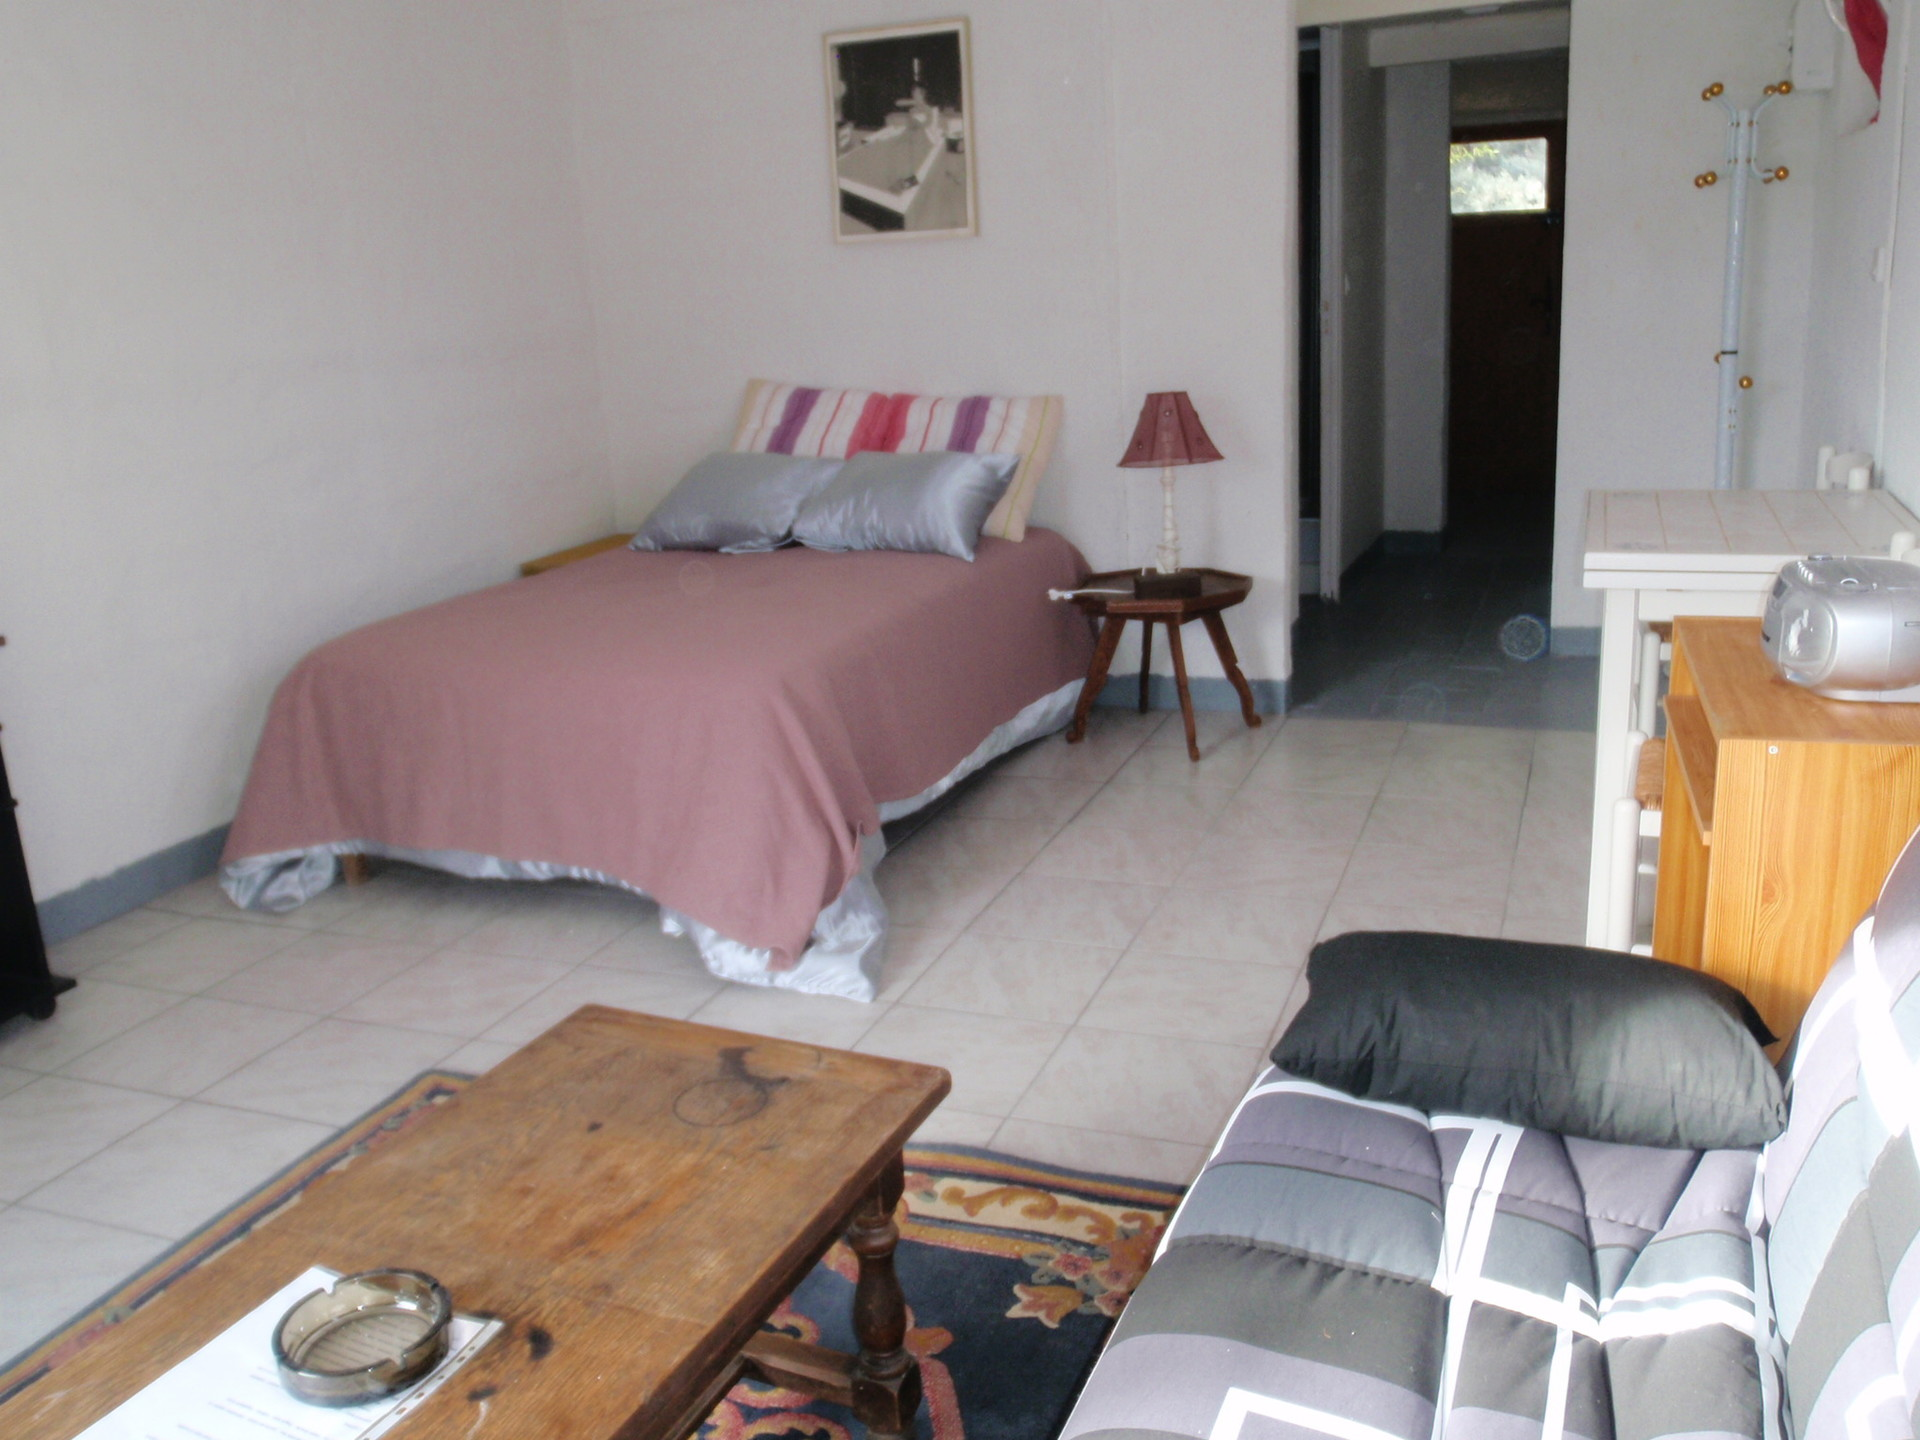 Room for rent in 3-bedroom apartment in Nimes